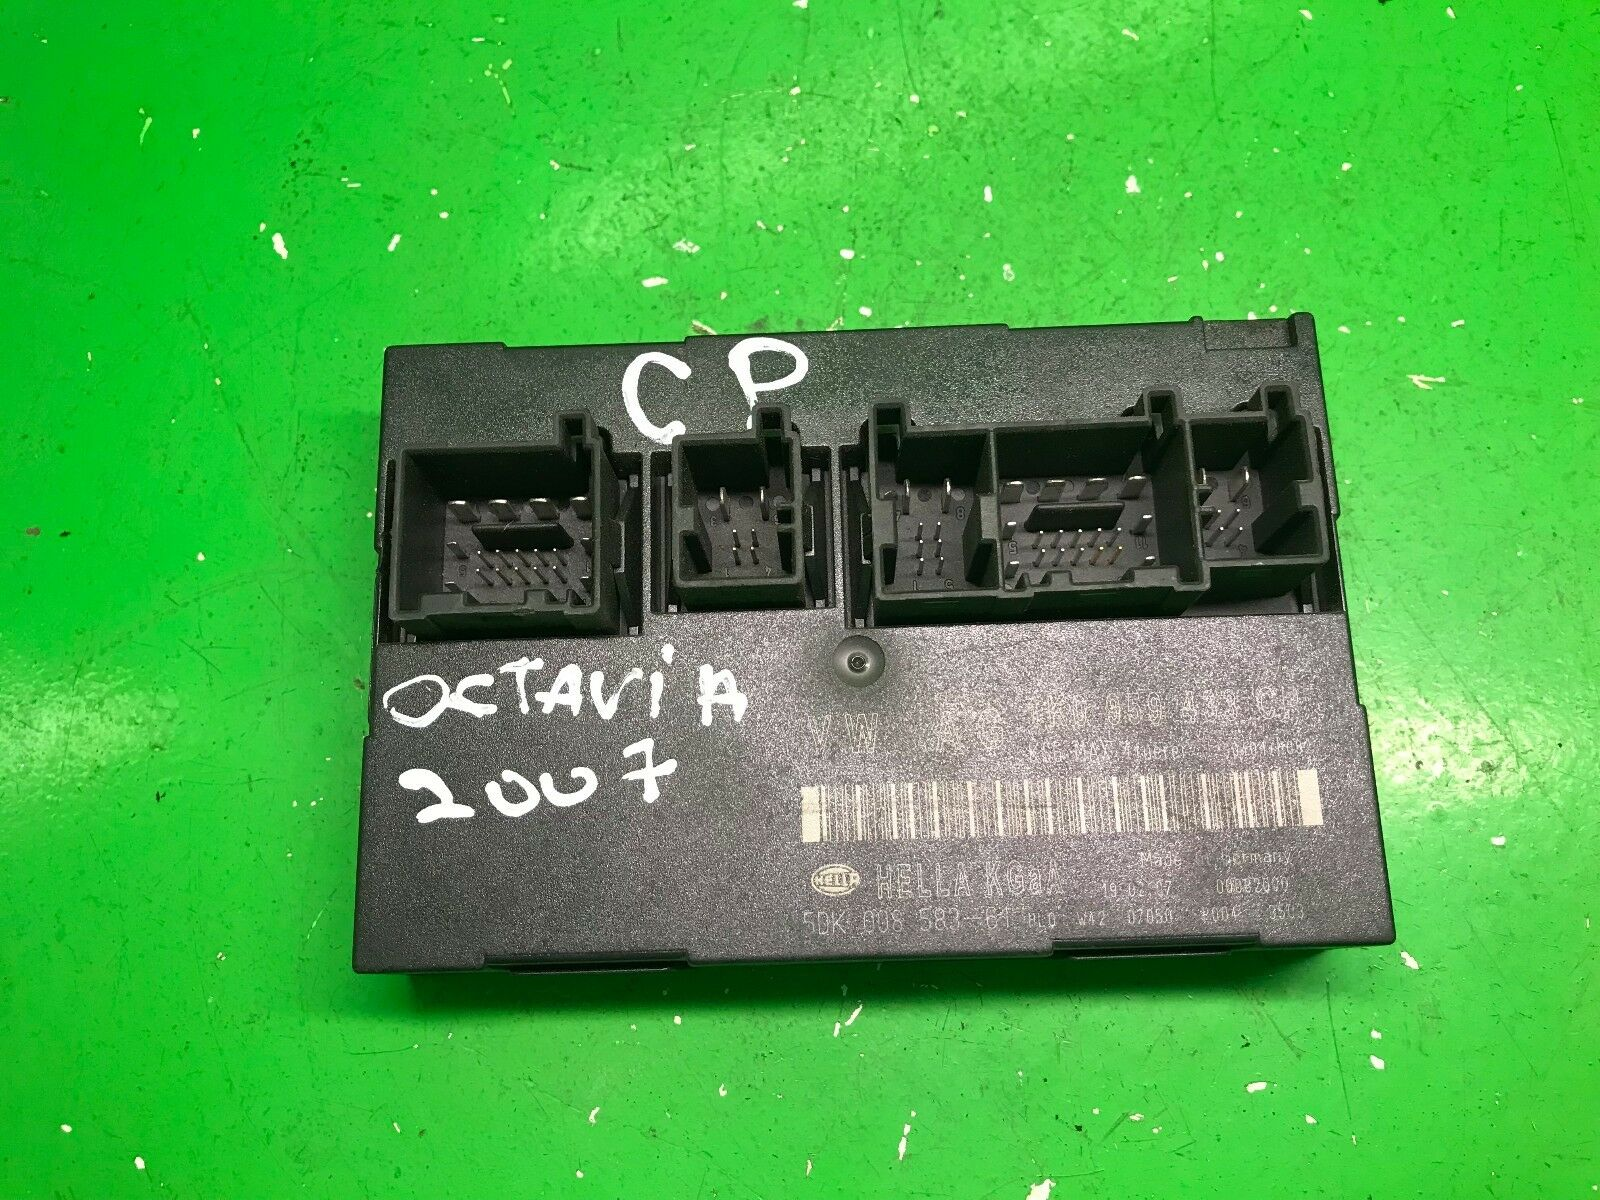 Skoda Octavia Comfort Control Module 1k0959433cp 5dk 008 583 61 Fuse Box Cigarette Lighter 1 Of 3only Available